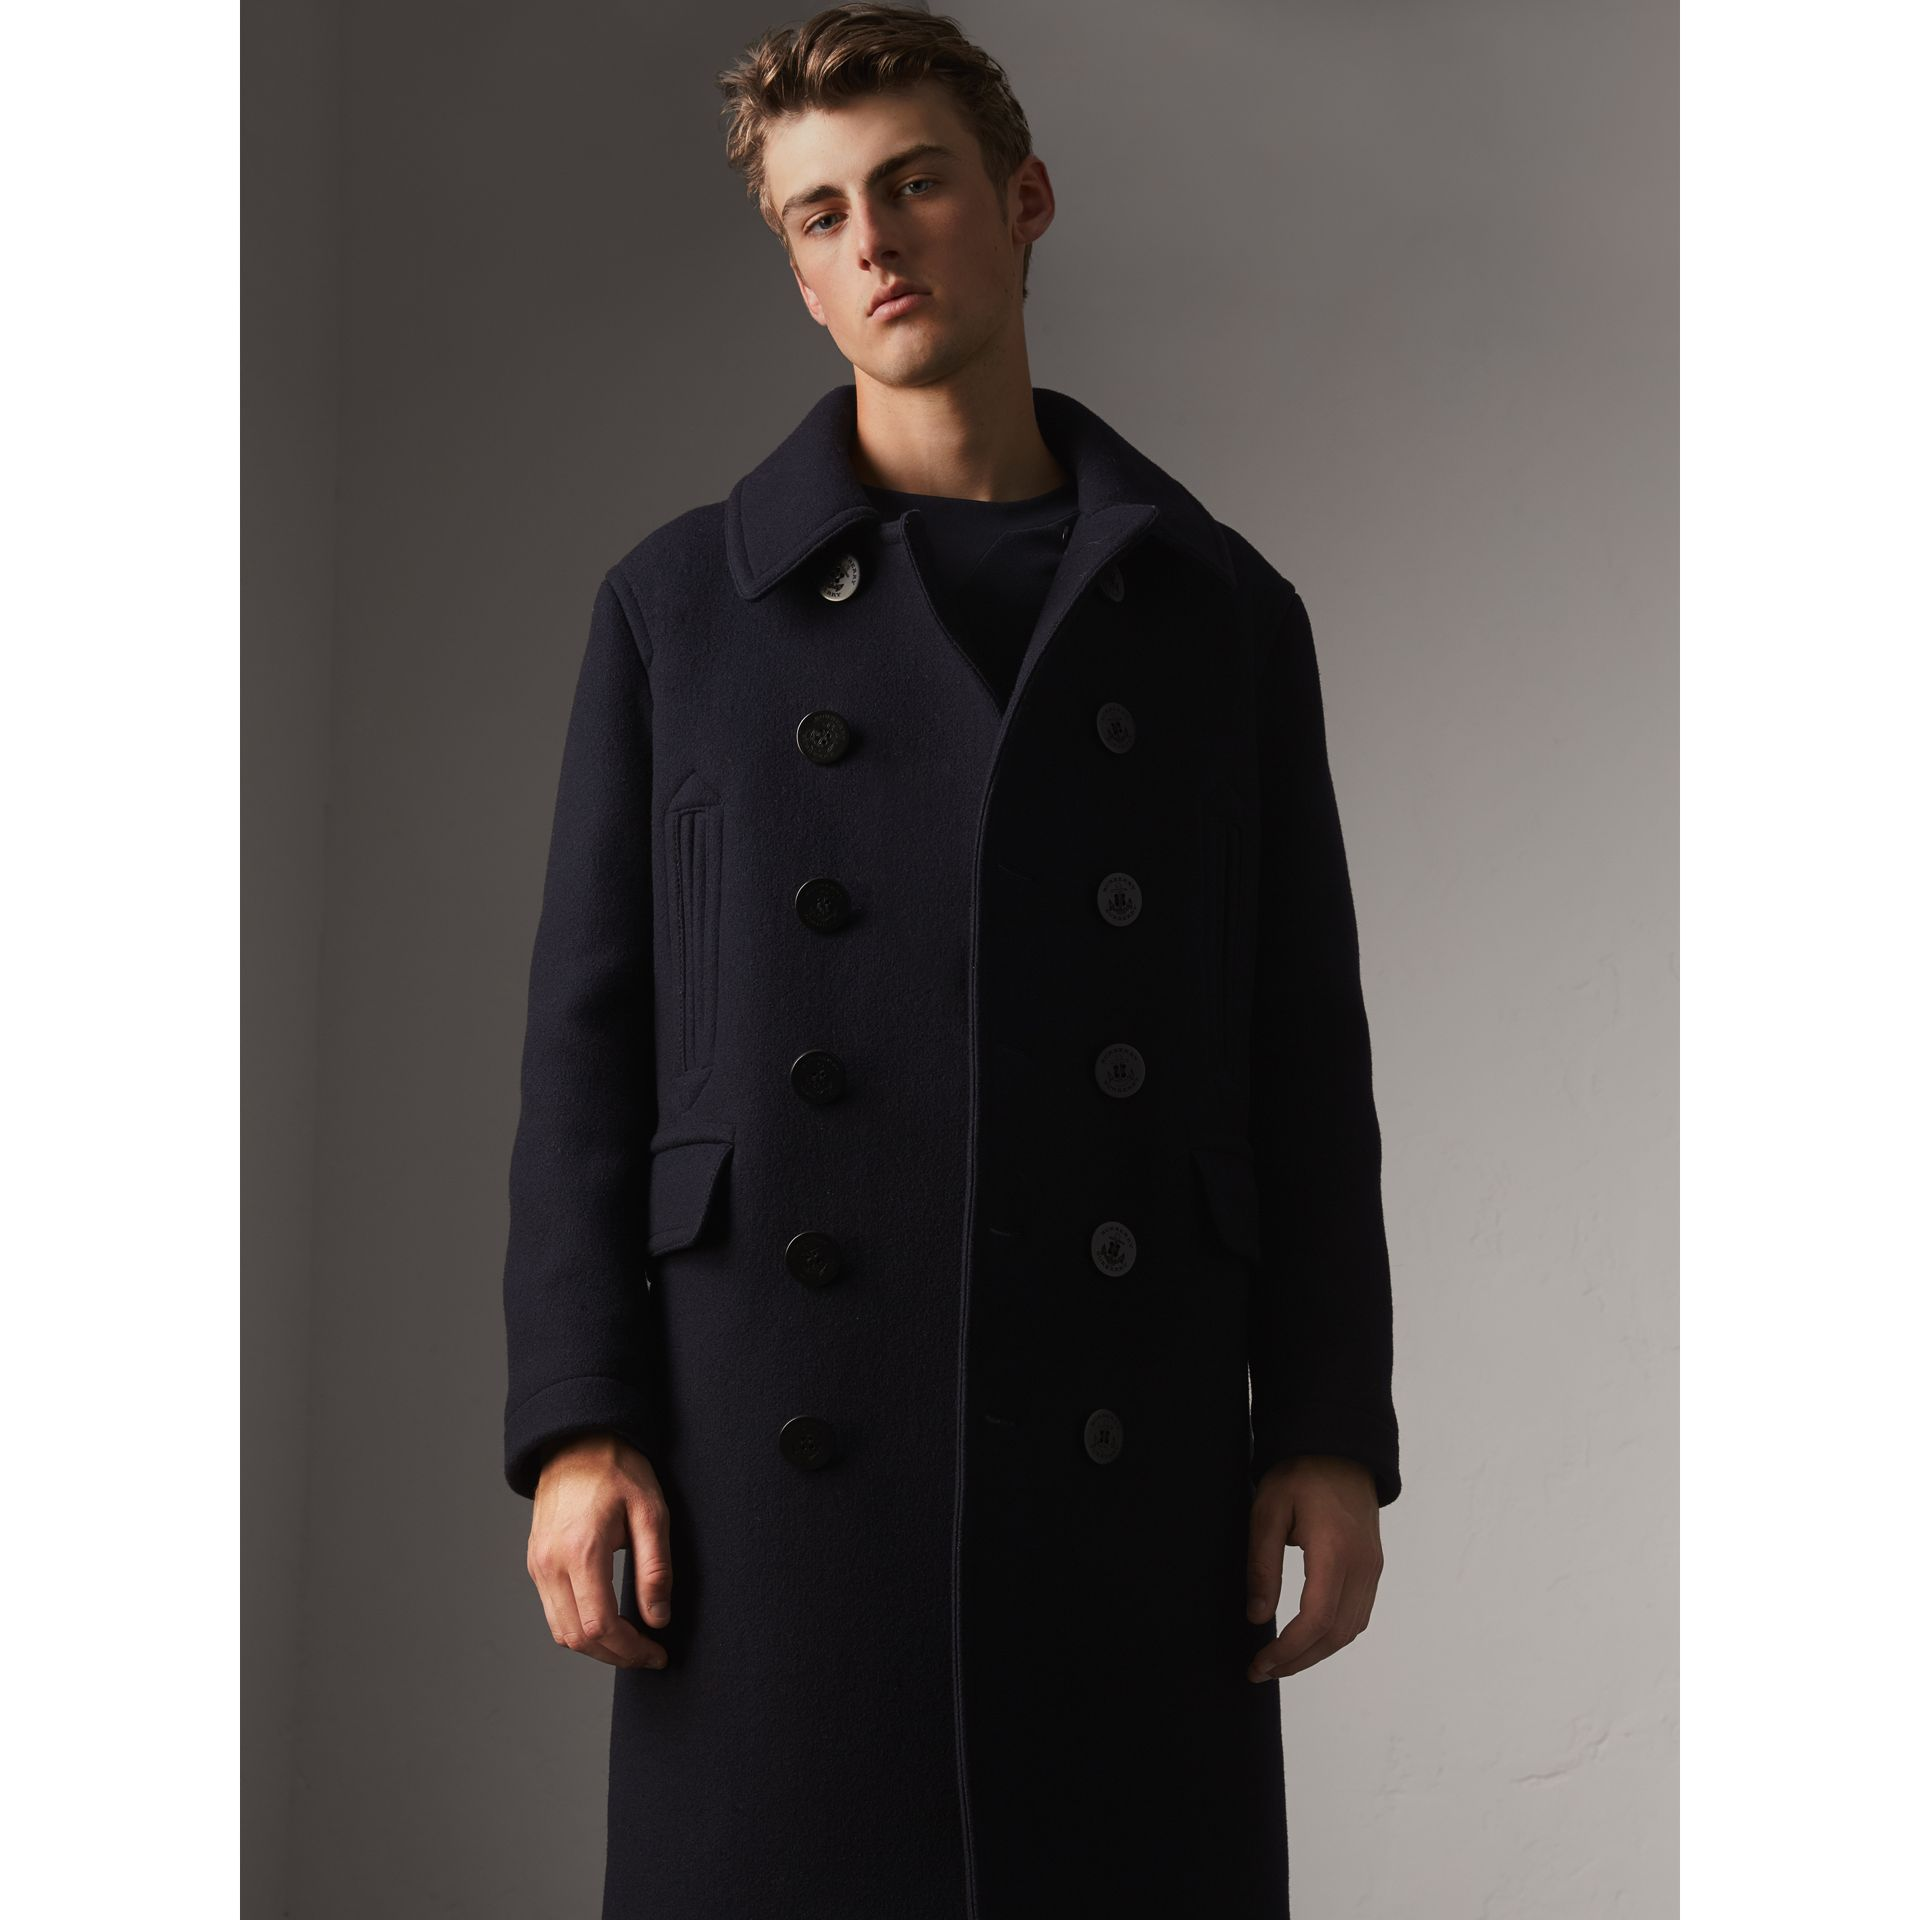 Wool Blend Double-breasted Coat in Navy - Men | Burberry Australia - gallery image 5